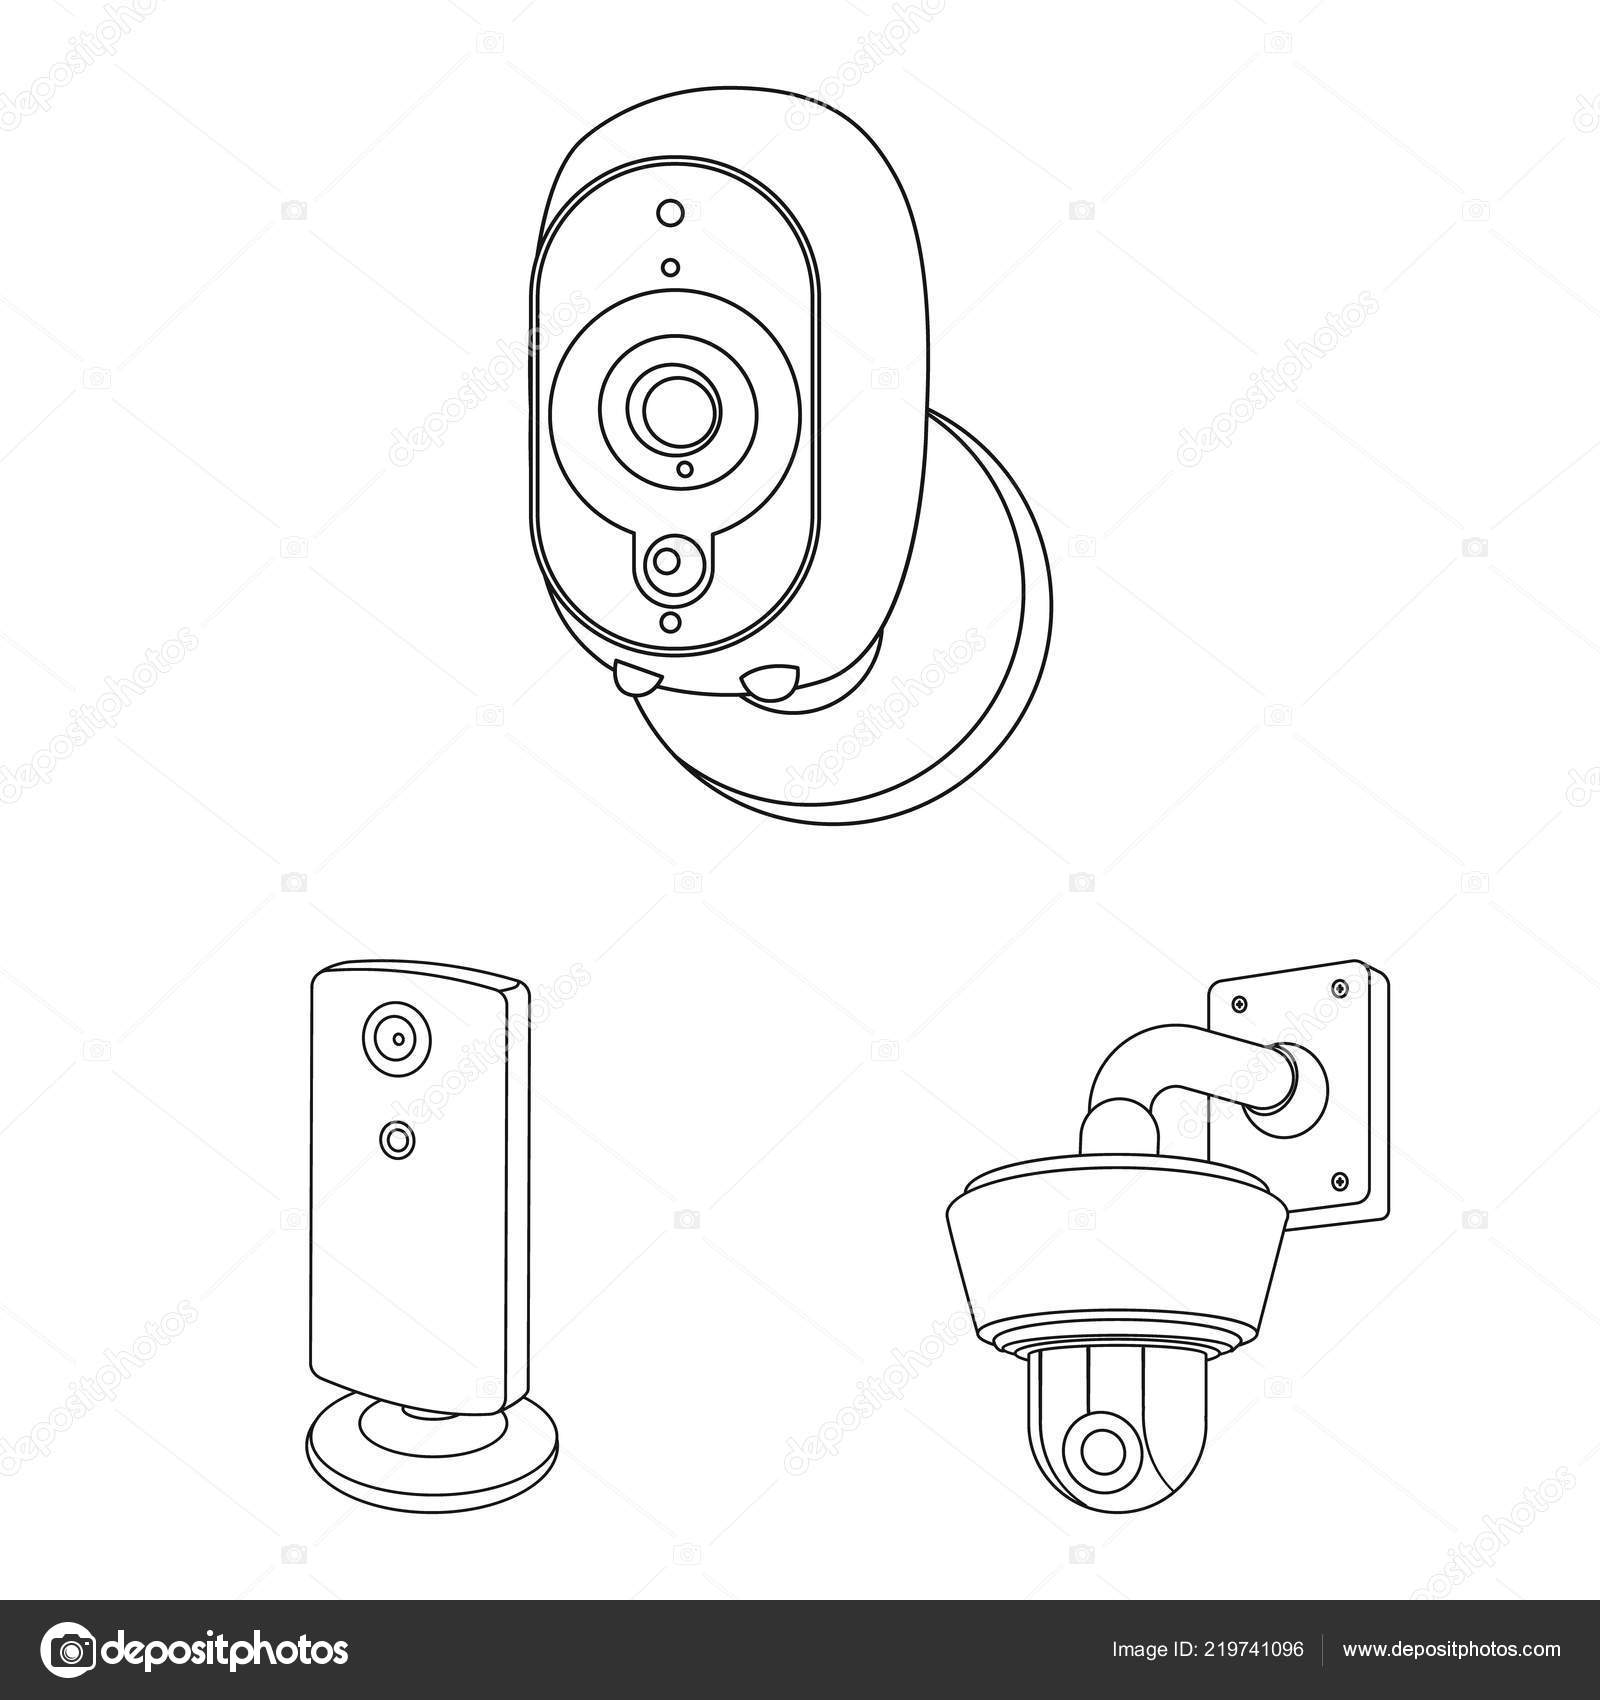 vector design of cctv and camera logo set of cctv and system stock Logitech Web Camera vector design of cctv and camera logo set of cctv and system stock symbol for